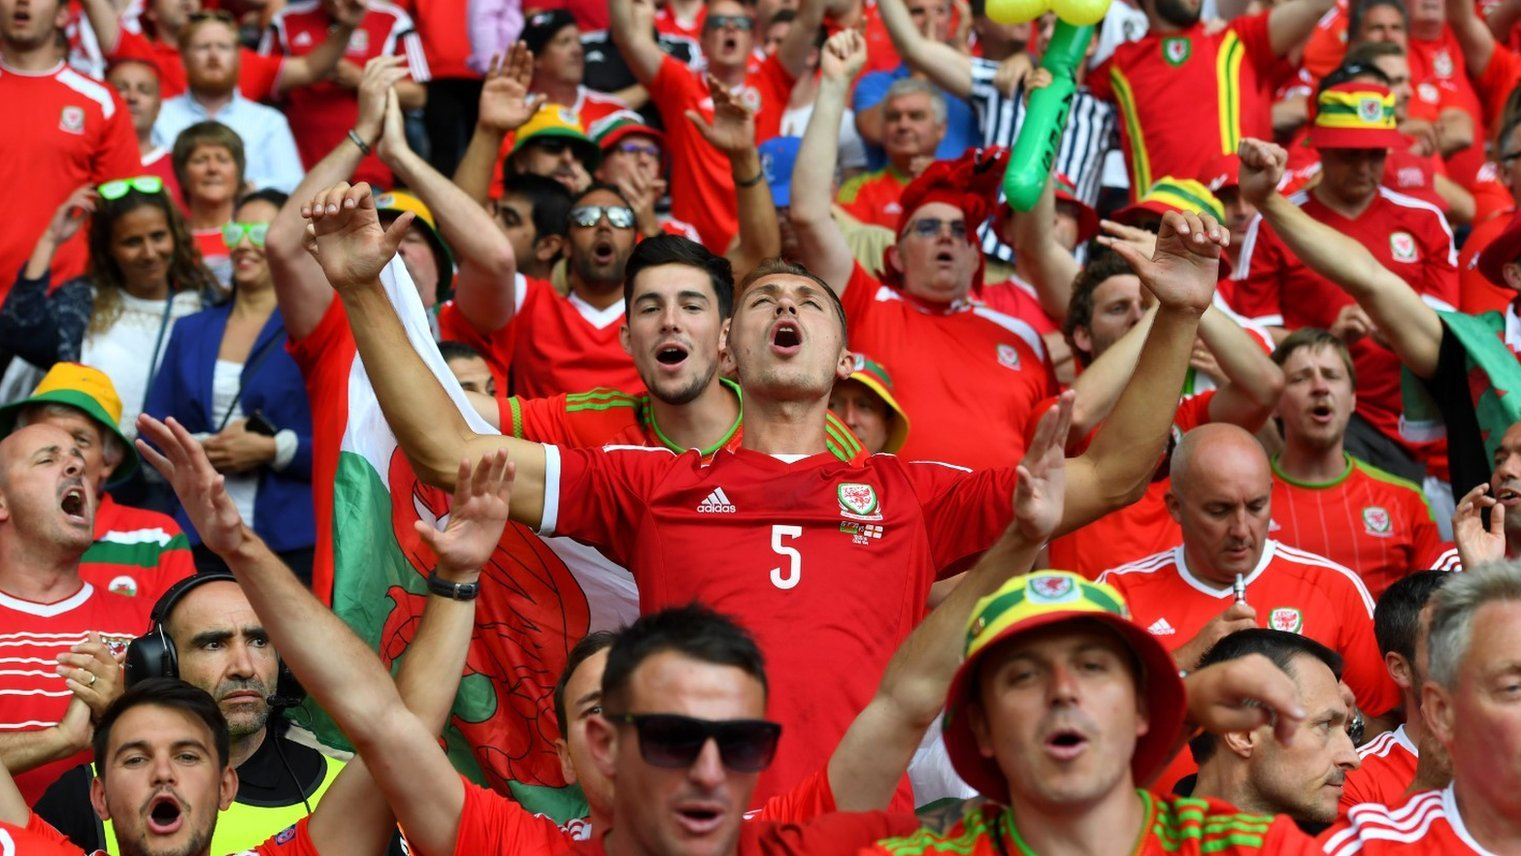 Euro 2016: Wales set for 'biggest game' since 1958 World Cup